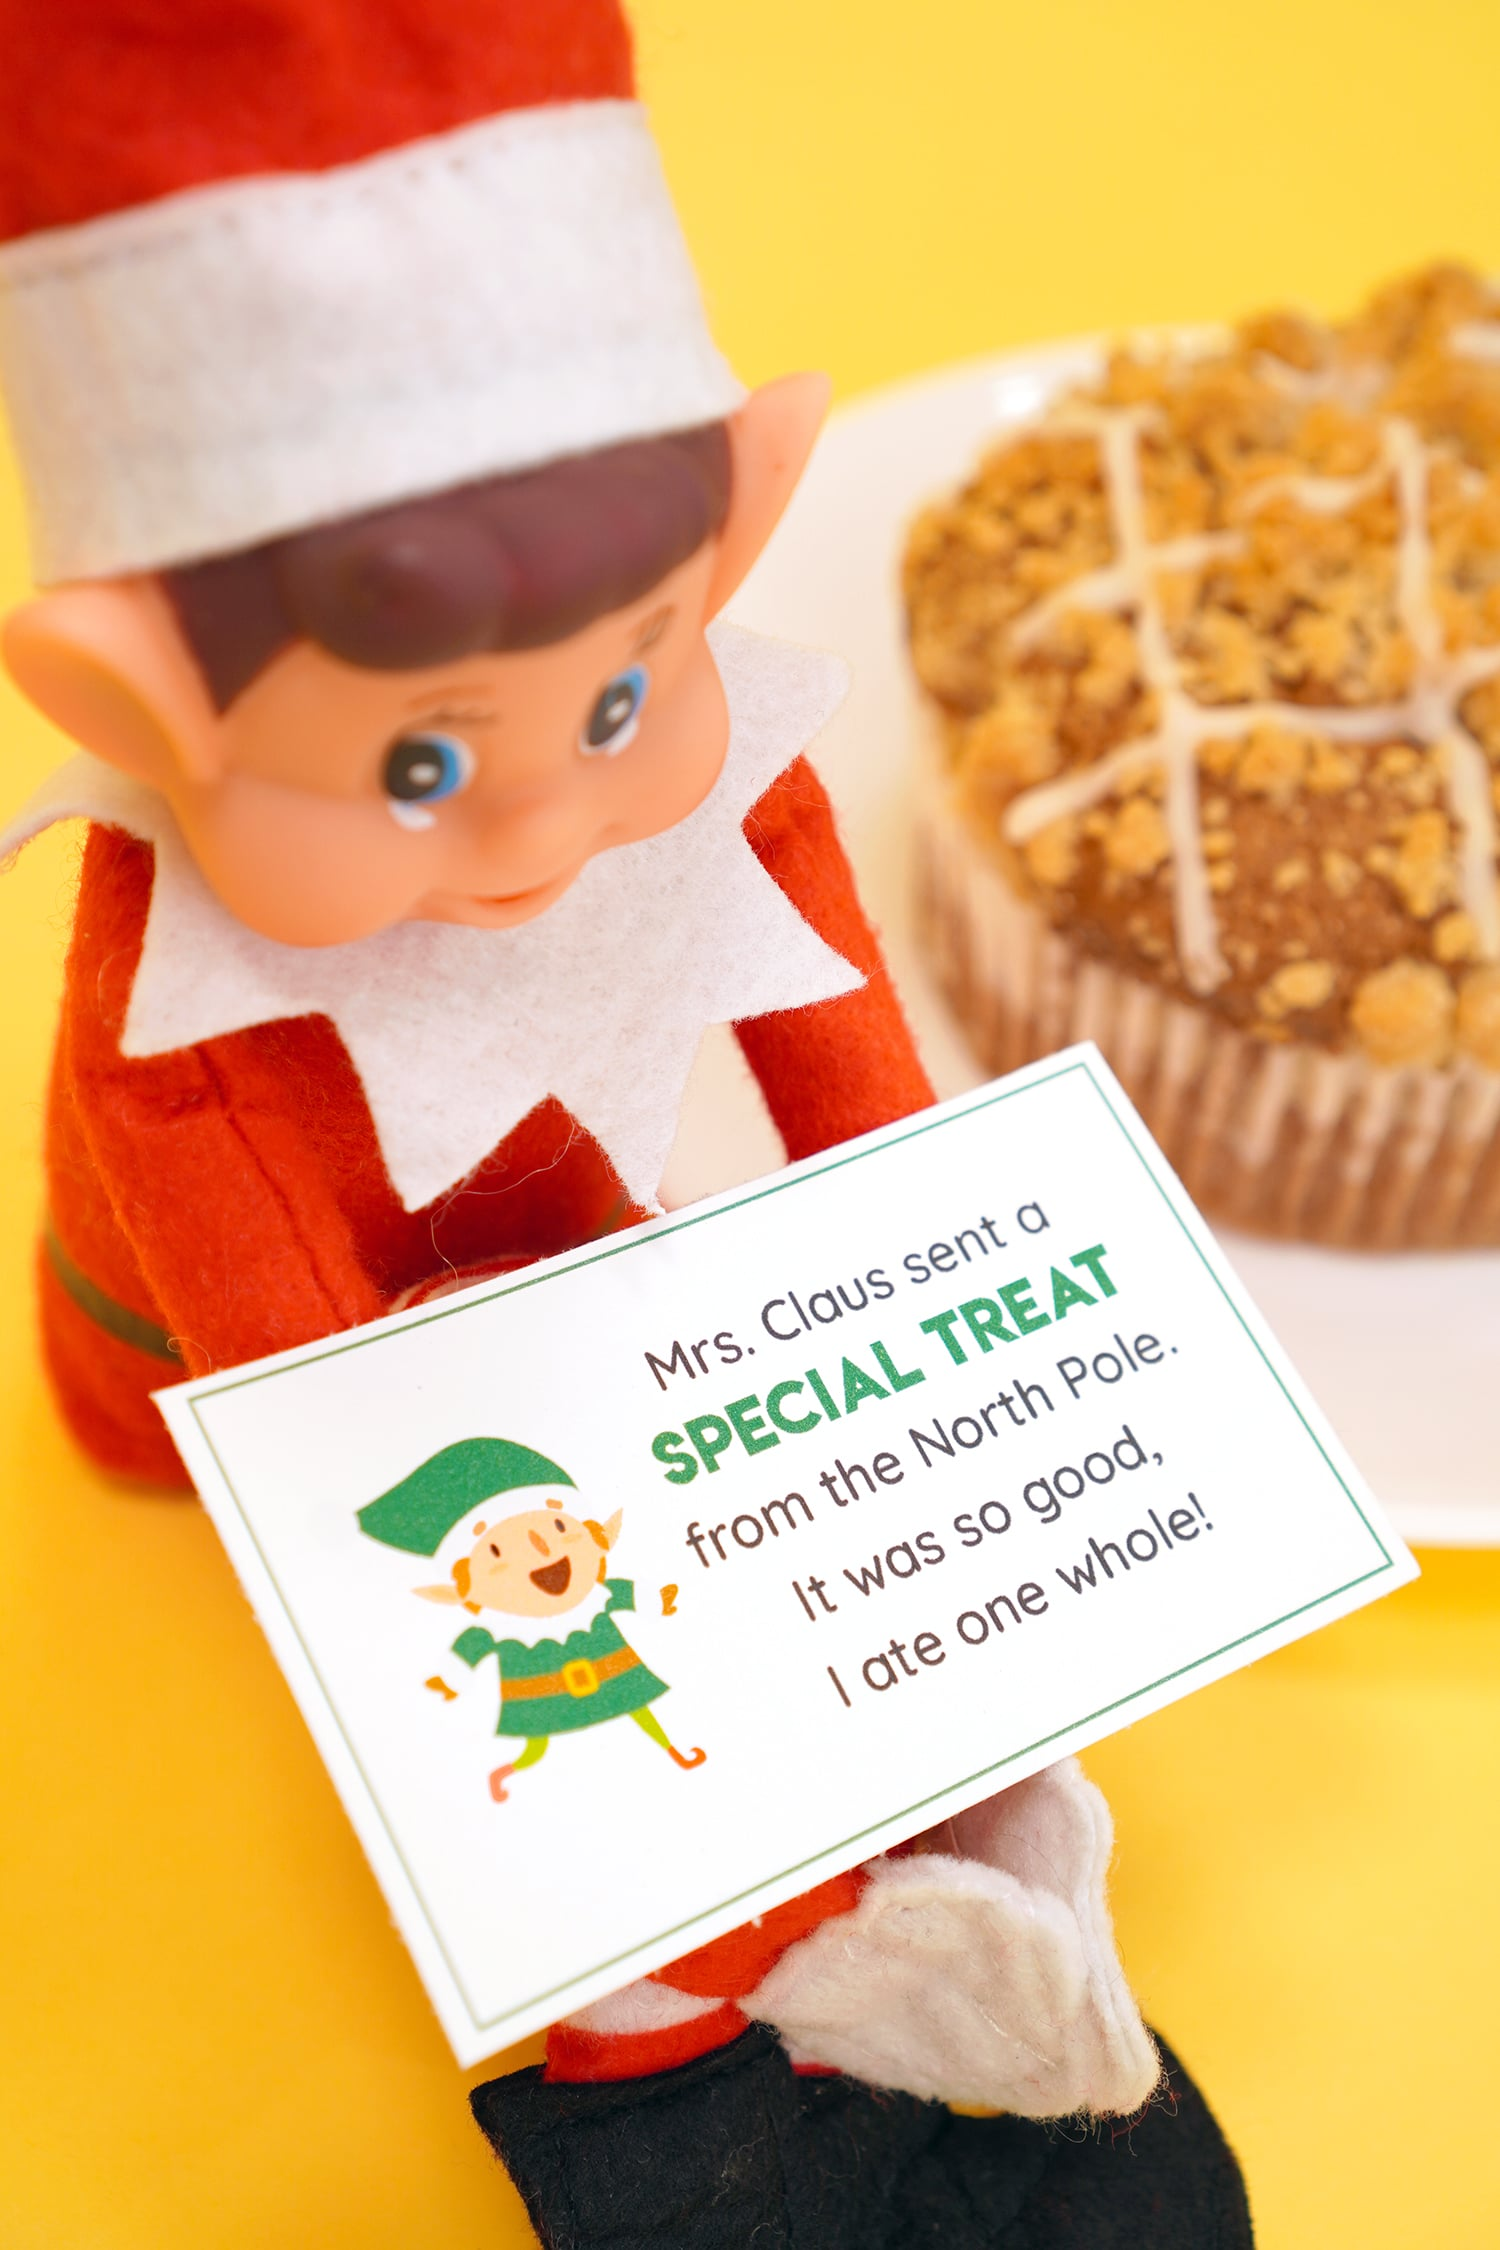 Elf on the Shelf doll with printable Elf on the Shelf note card on yellow background with bakery treats in the far background